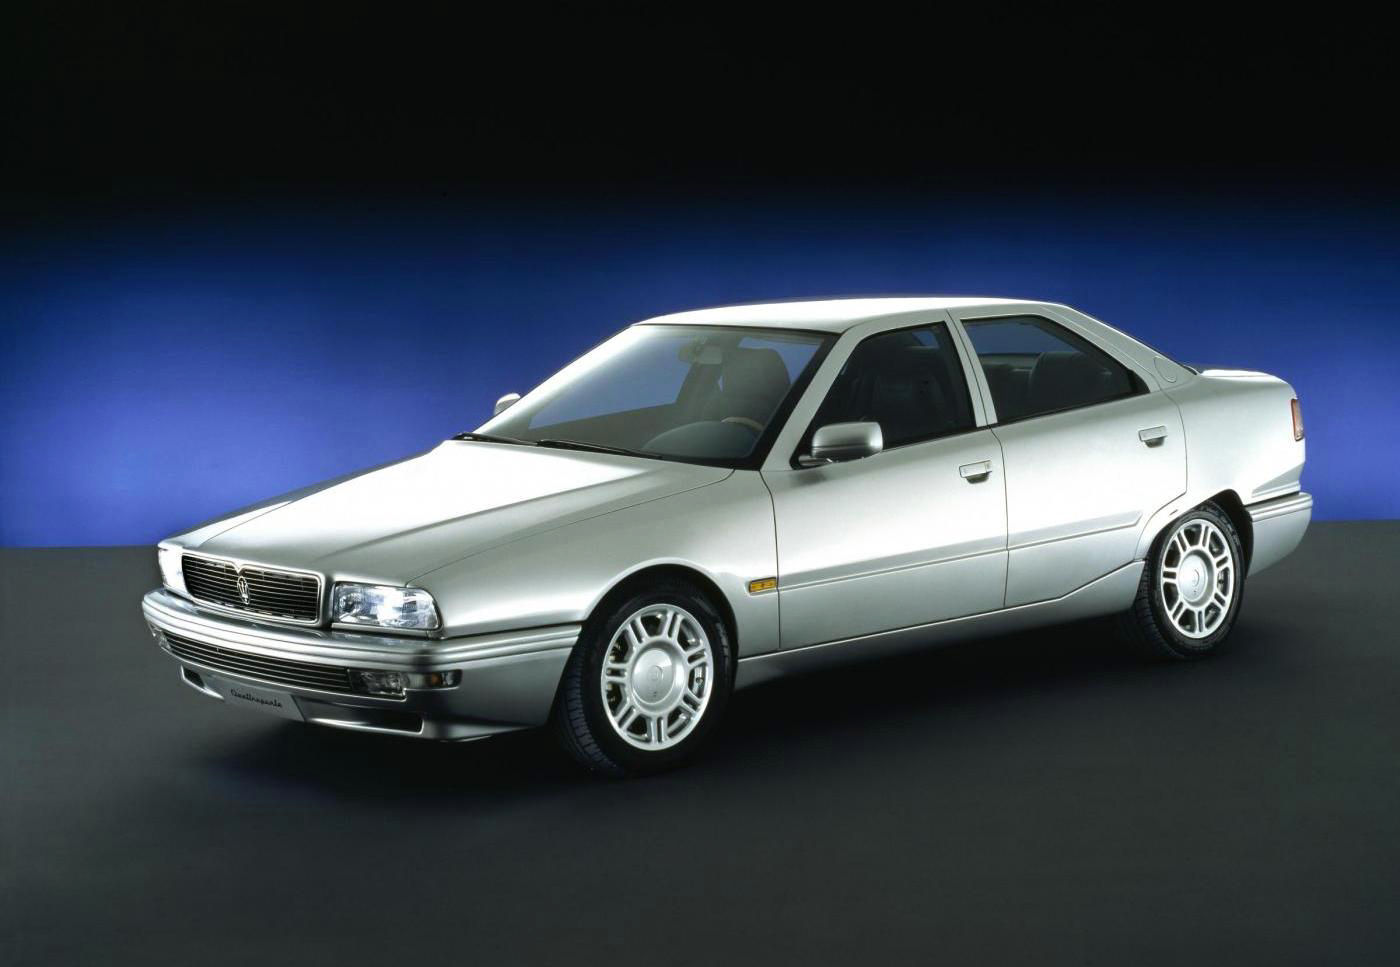 1994 Maserati Quattroporte IV - exterior view of the 5-seater sedan in silver